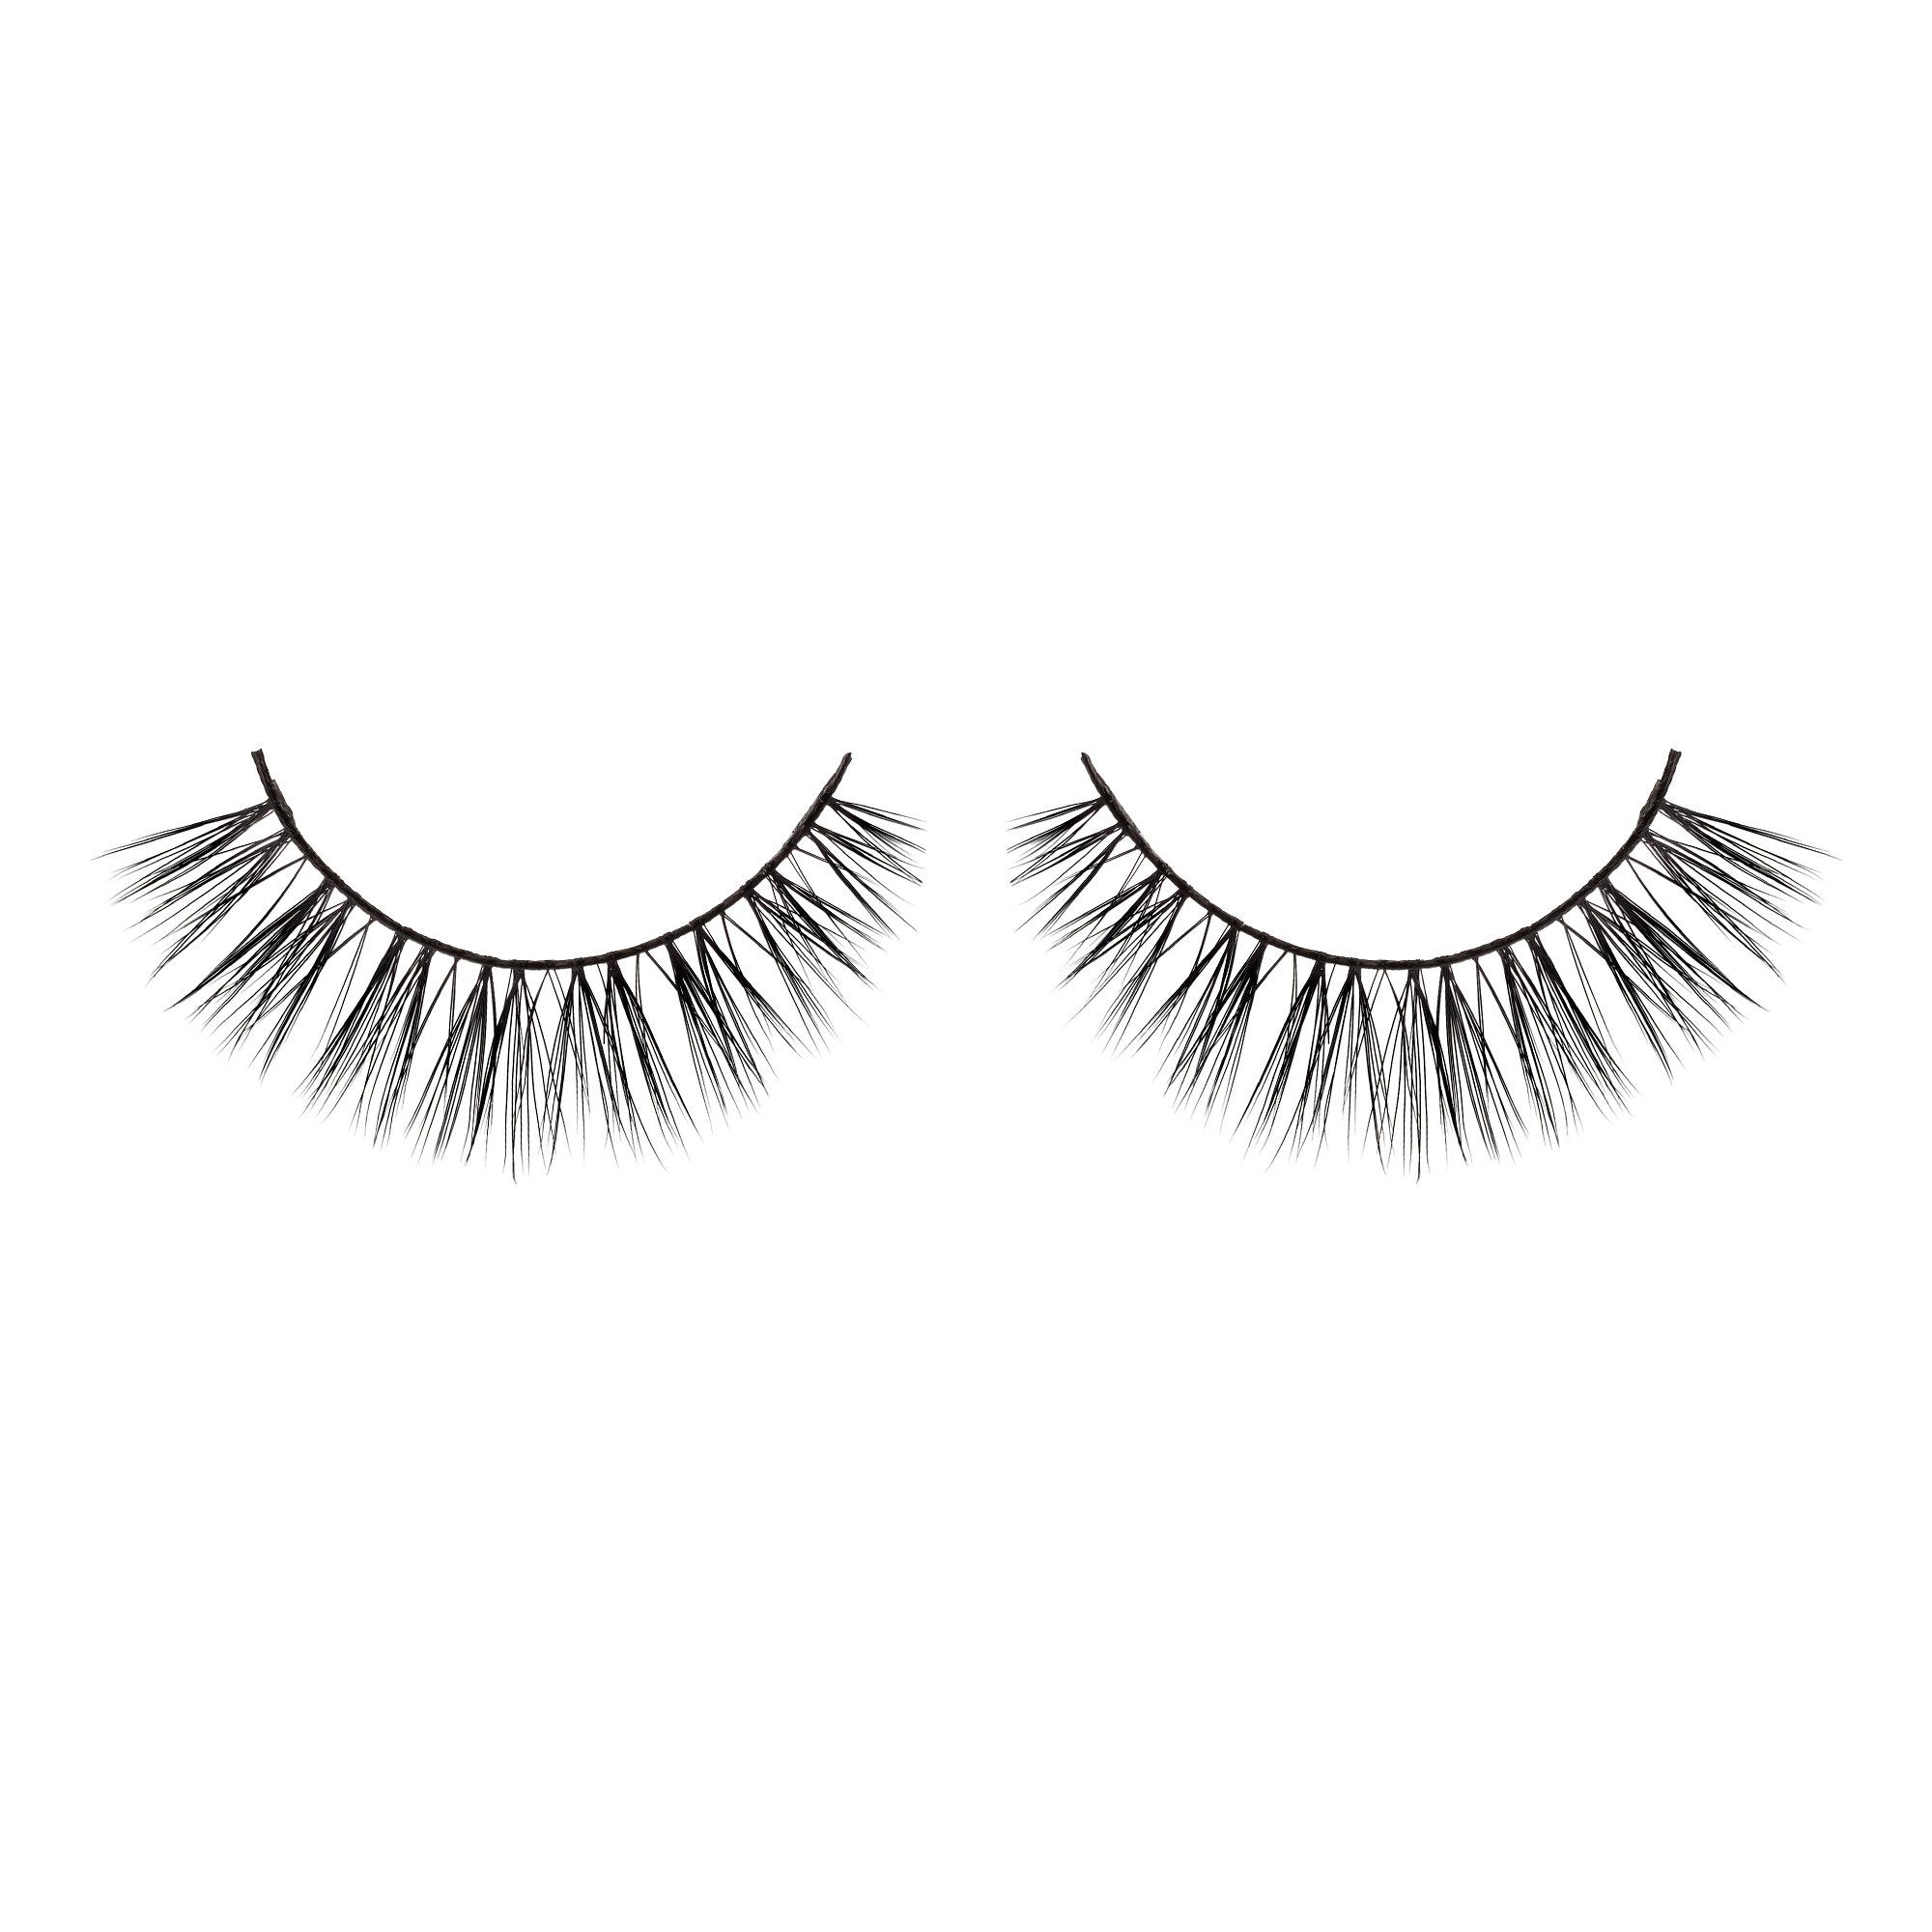 b0a818afb28 ... mirror on the wall, who's the most natural of them all? These lashes  are designed for everyday wear, with the mink sparsely distrib… | Products  | Lashe…